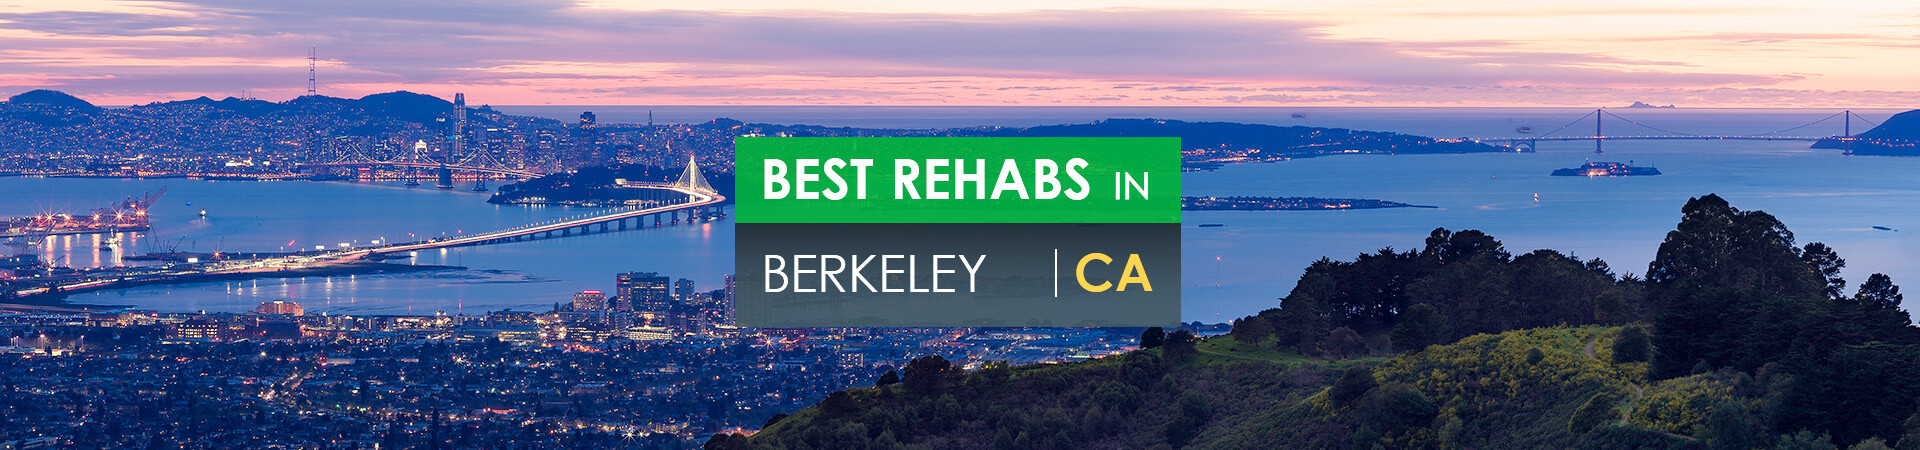 Best rehabs in Berkeley, CA